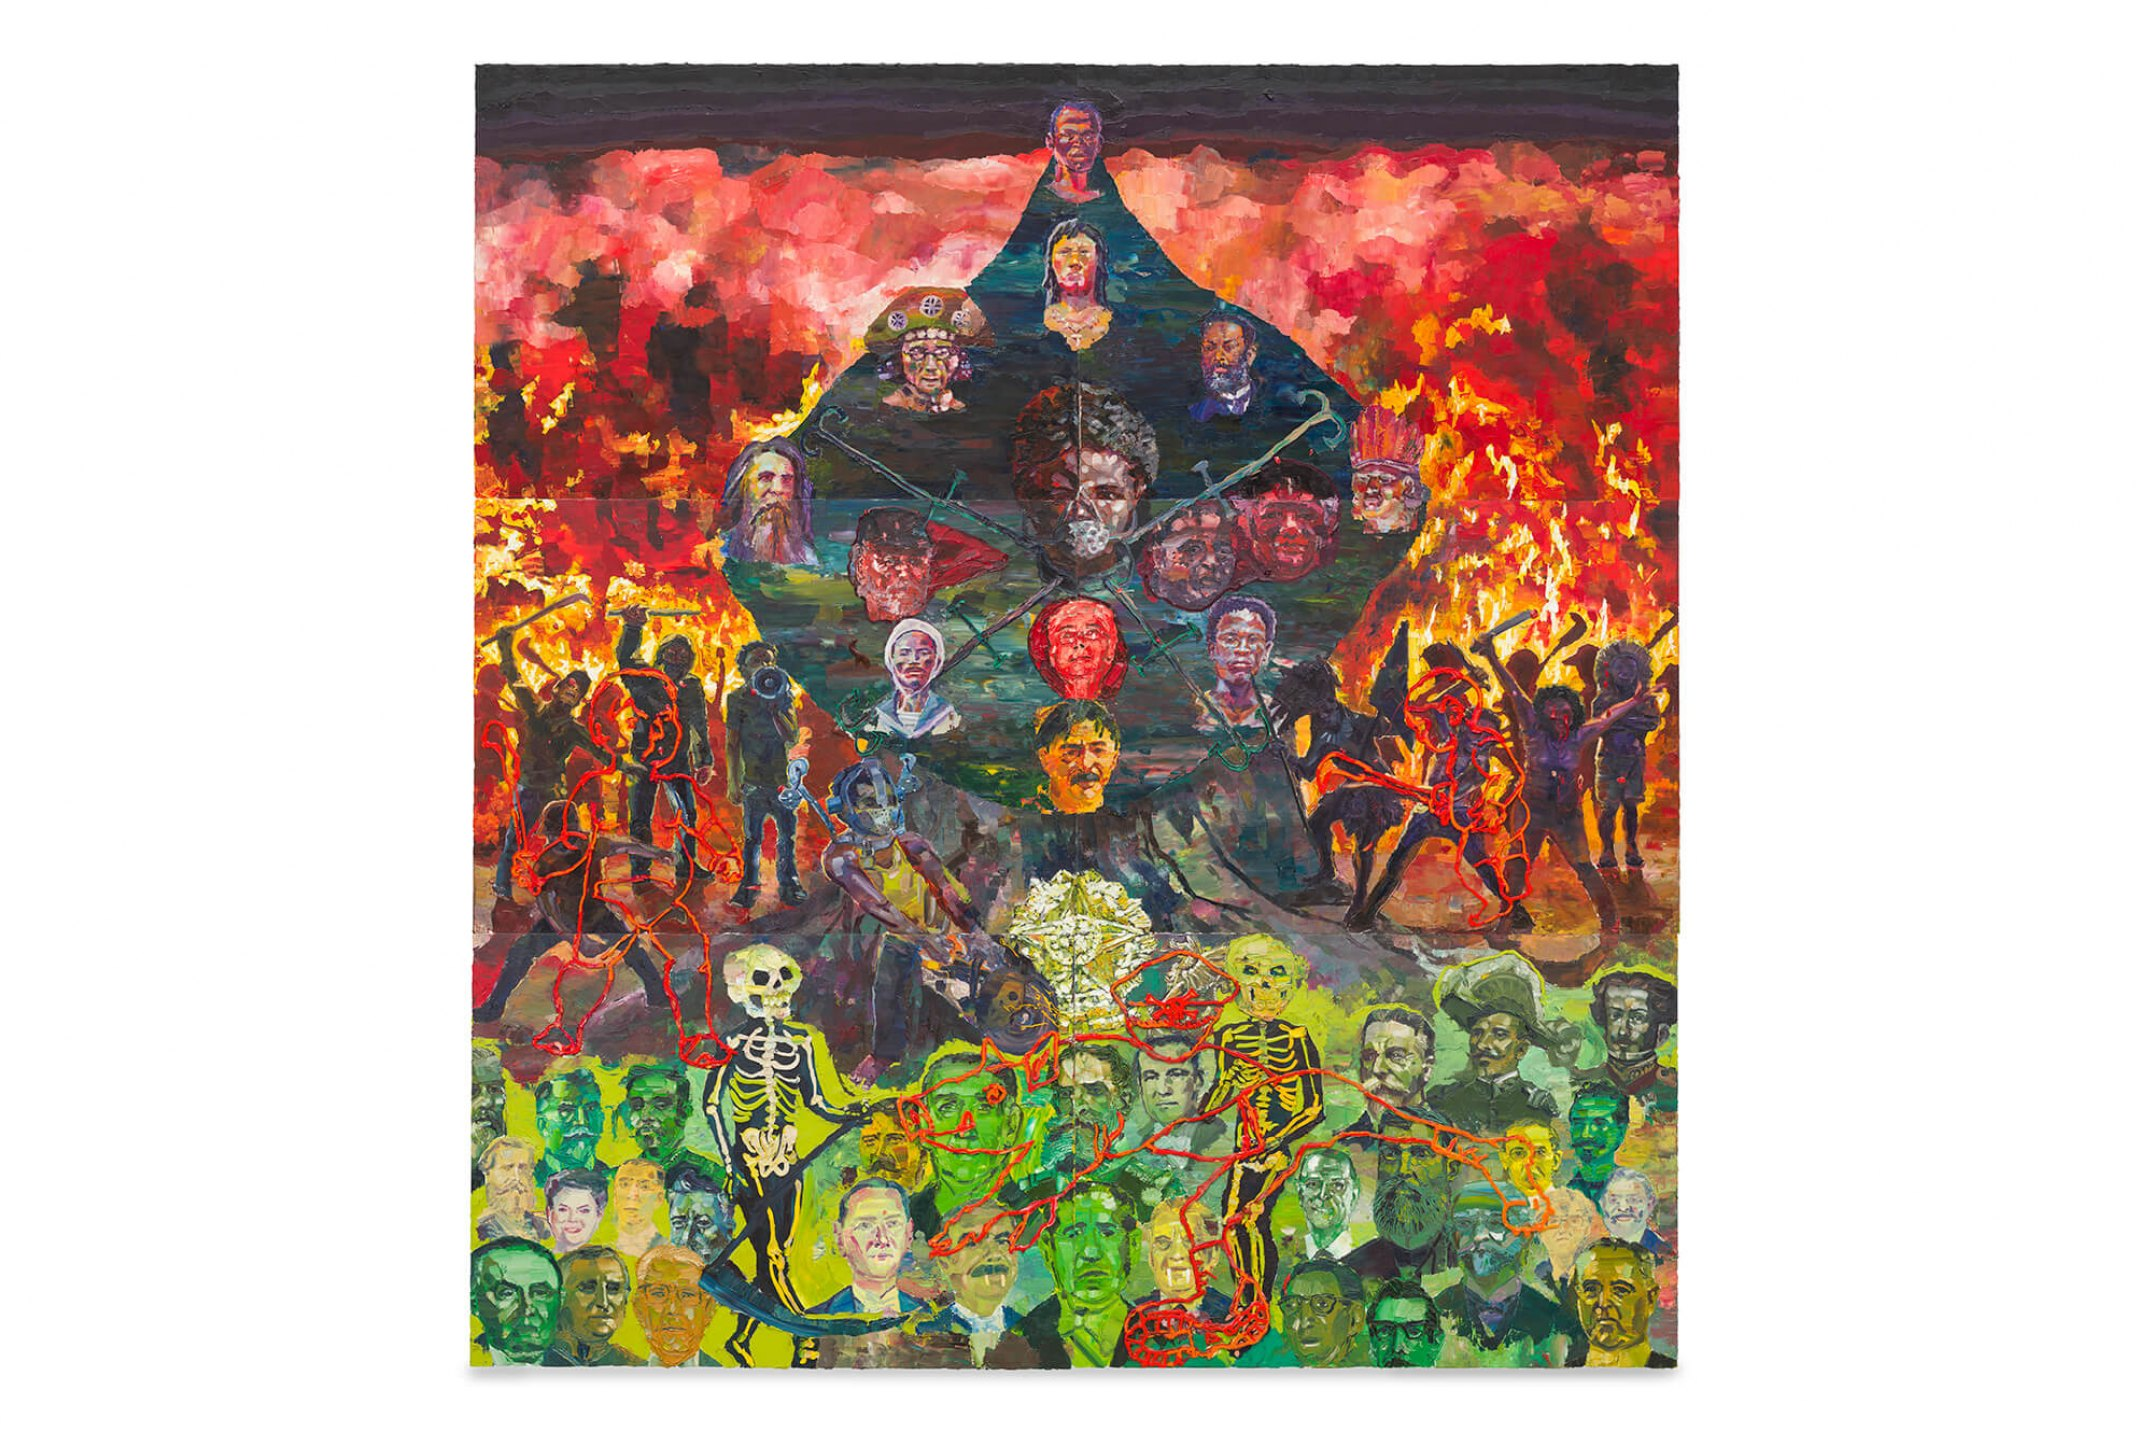 Thiago Martins de Melo,&nbsp;<em>Tree of Blood and Fire Obliterating Pigs</em>,&nbsp;2013, oil on canvas, 390 × 360 cm - Mendes Wood DM